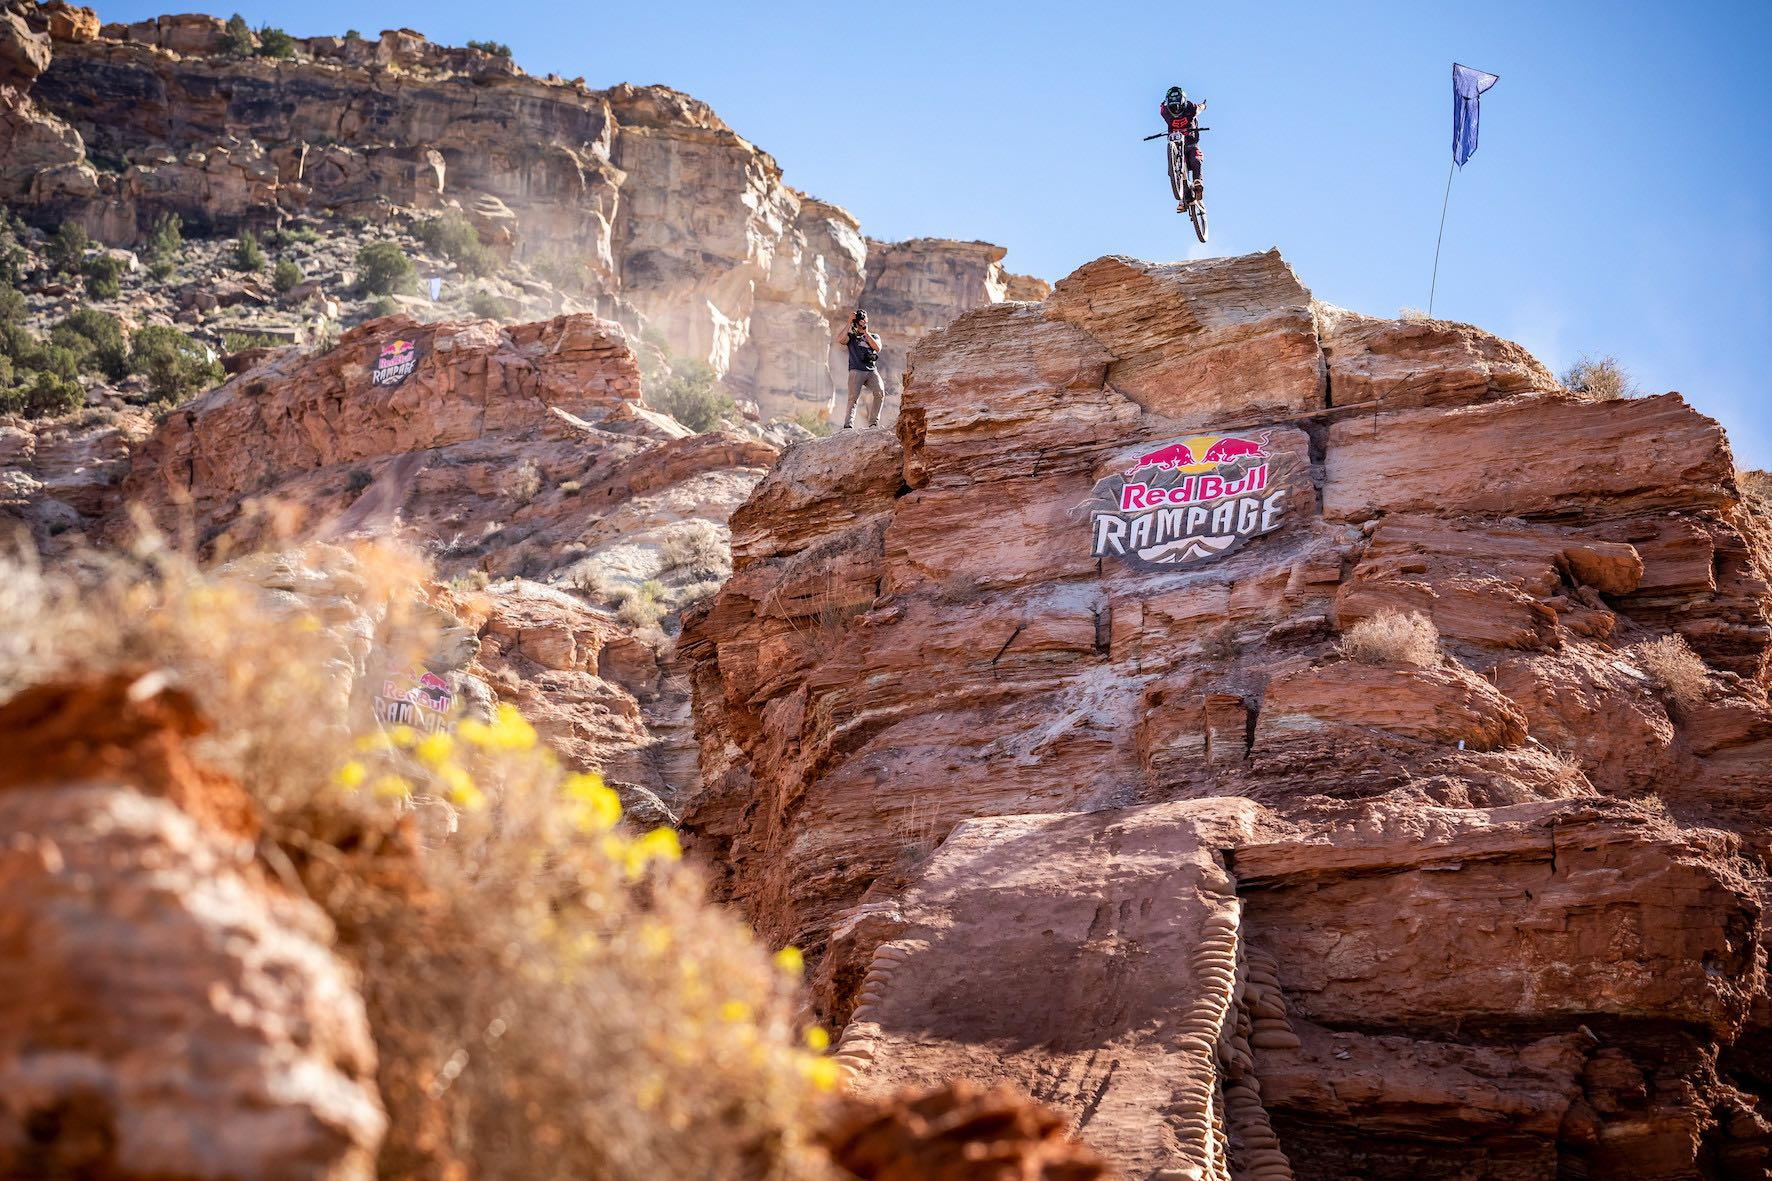 Ethan Nell finishing in 3rd at the 2018 Red Bull Rampage